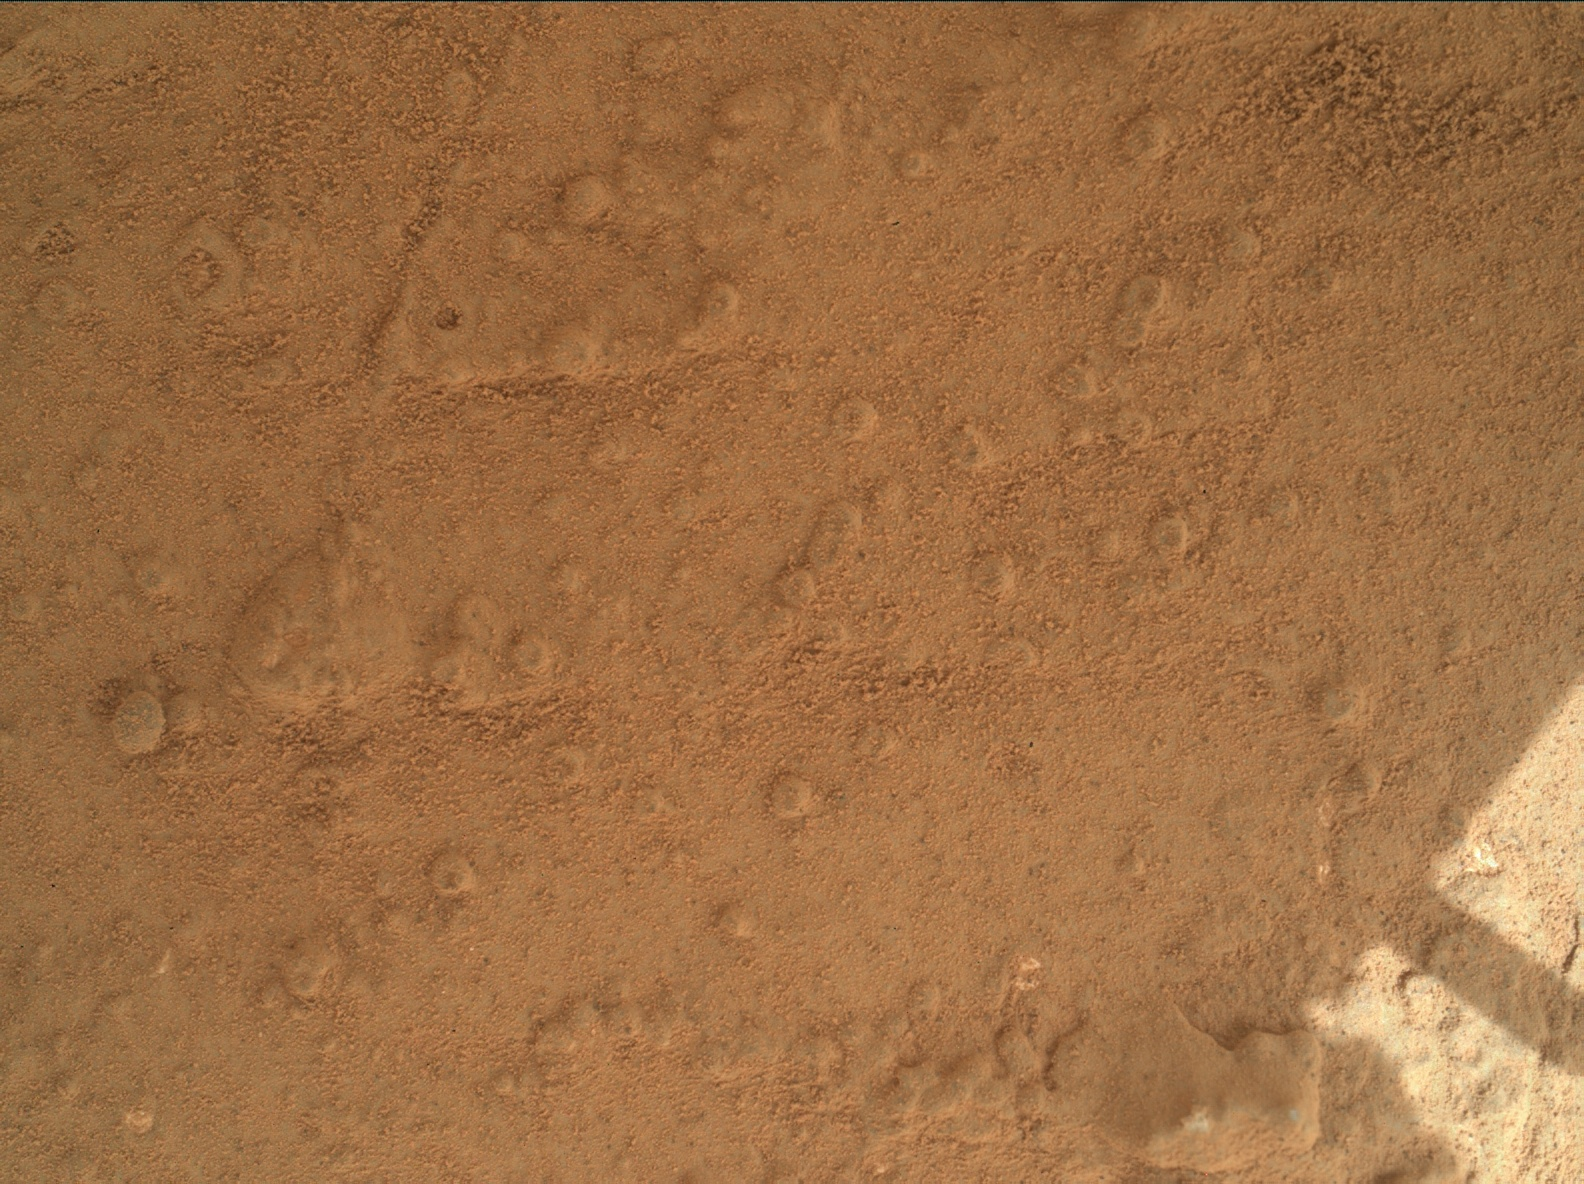 Nasa's Mars rover Curiosity acquired this image using its Mars Hand Lens Imager (MAHLI) on Sol 169